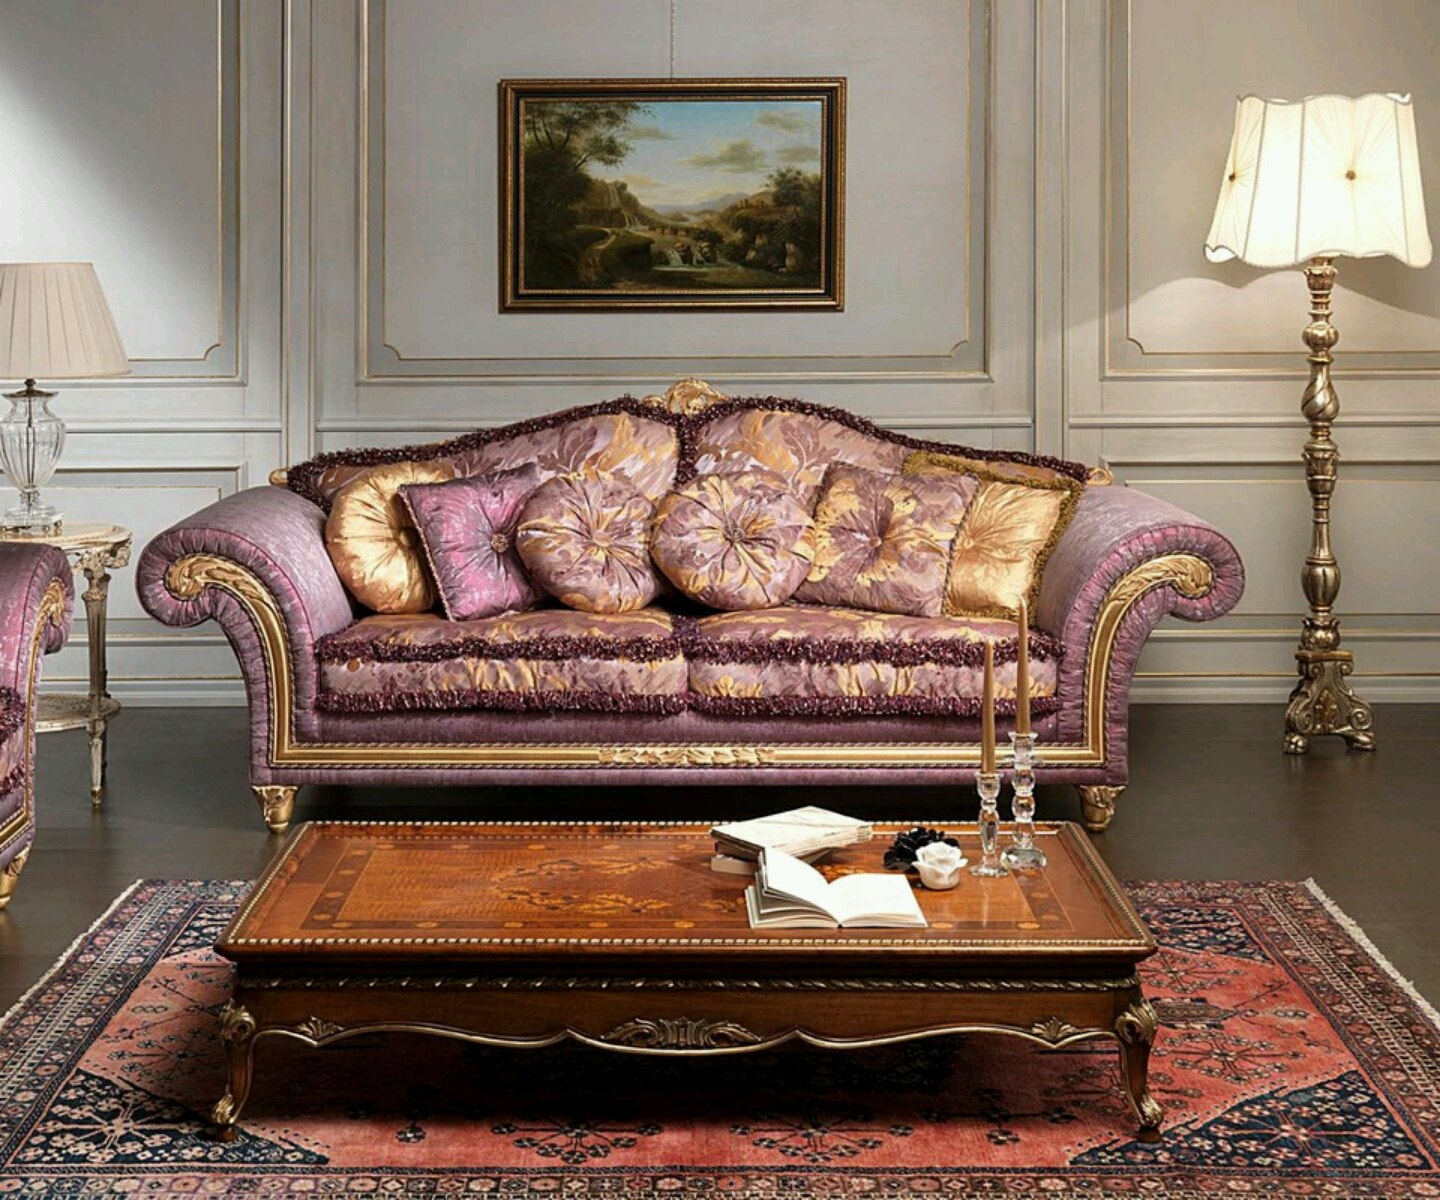 Modern sofa designs with beautiful cushion styles ...